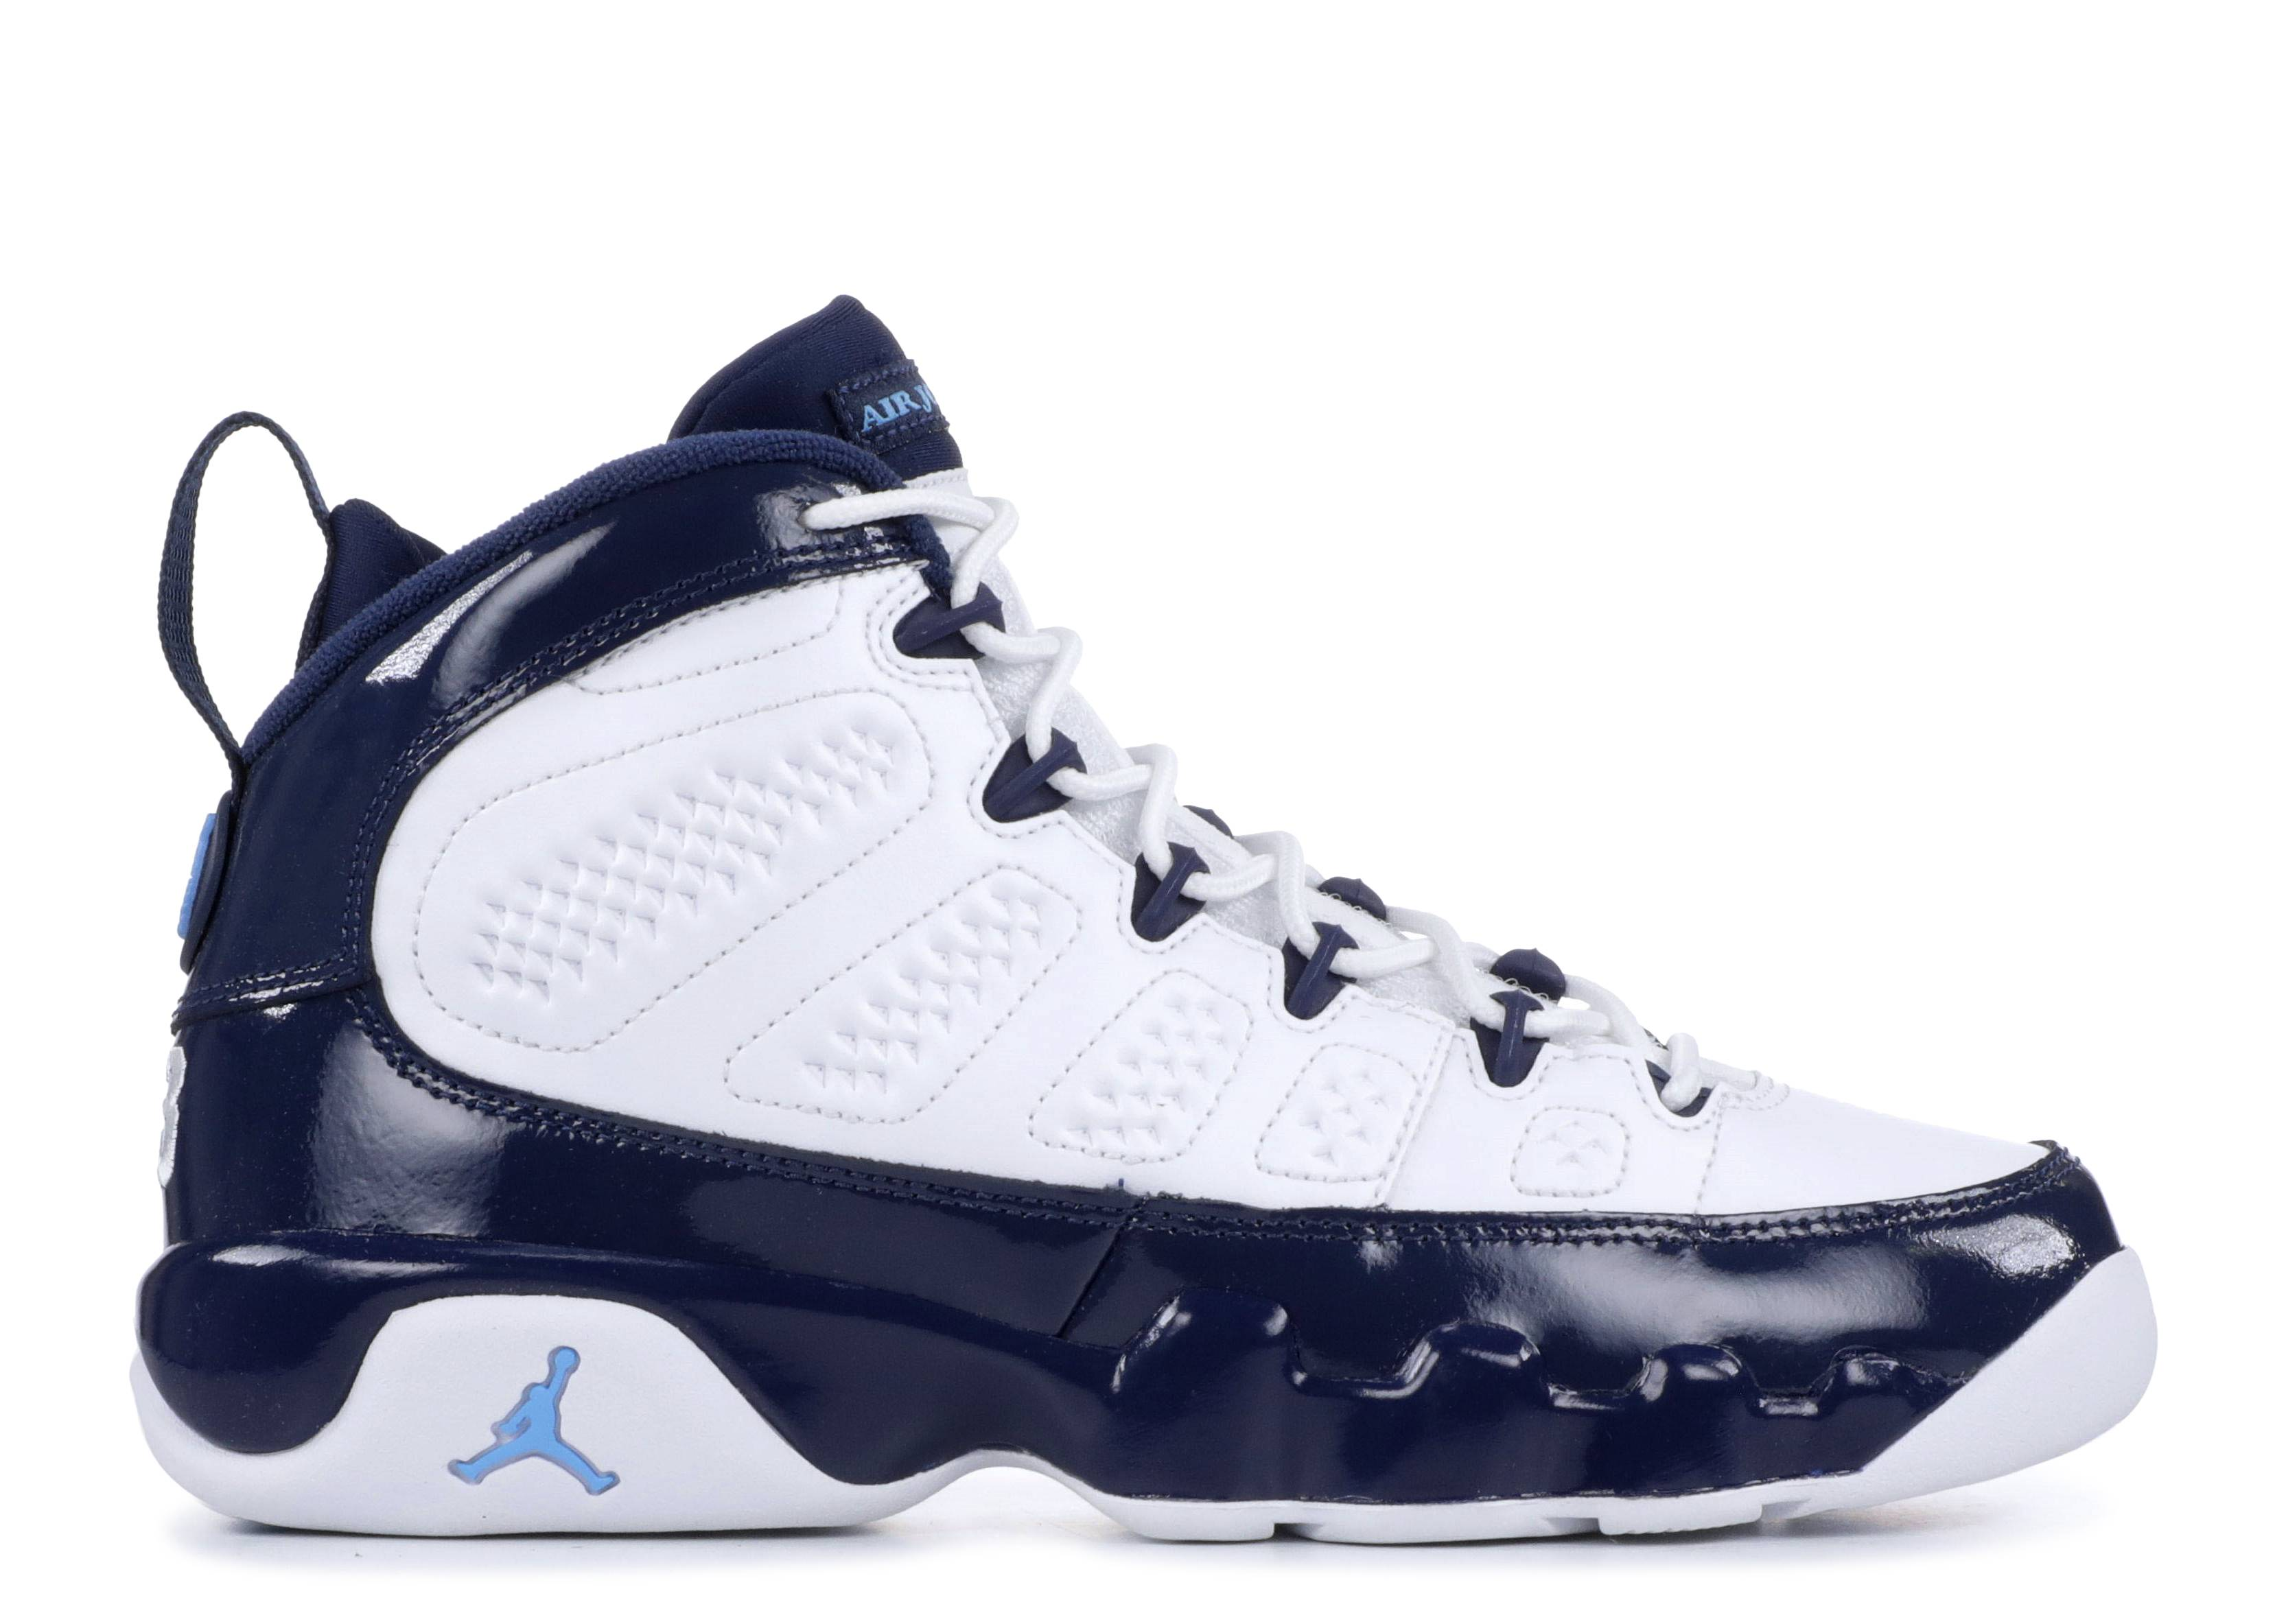 ce758d115f4 Air Jordan 9 (IX) Shoes - Nike